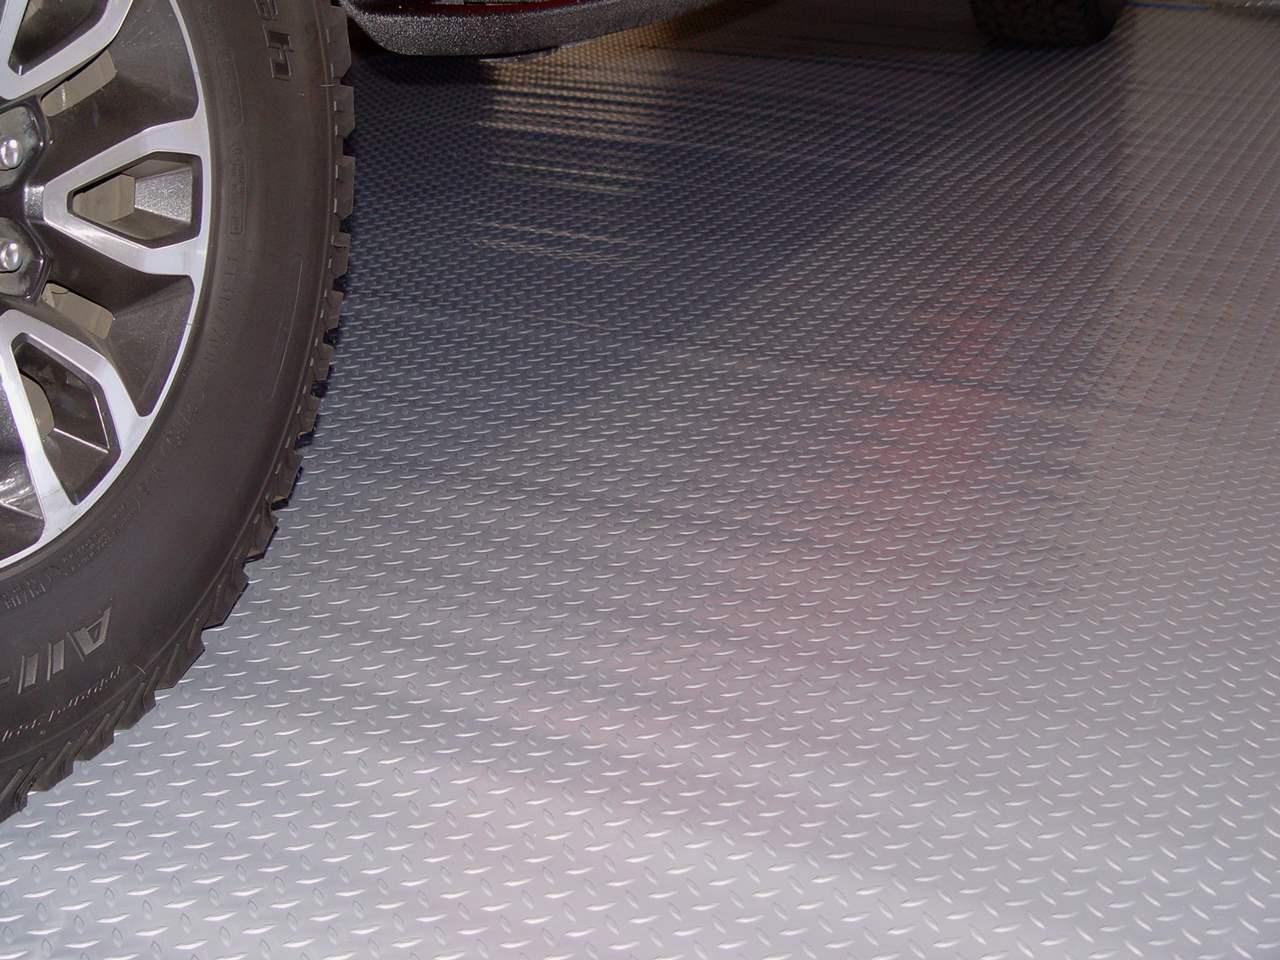 Drymate Garage Floor Mat Review Diamond Deck Garage Mats Cheap Garage Floor Mats